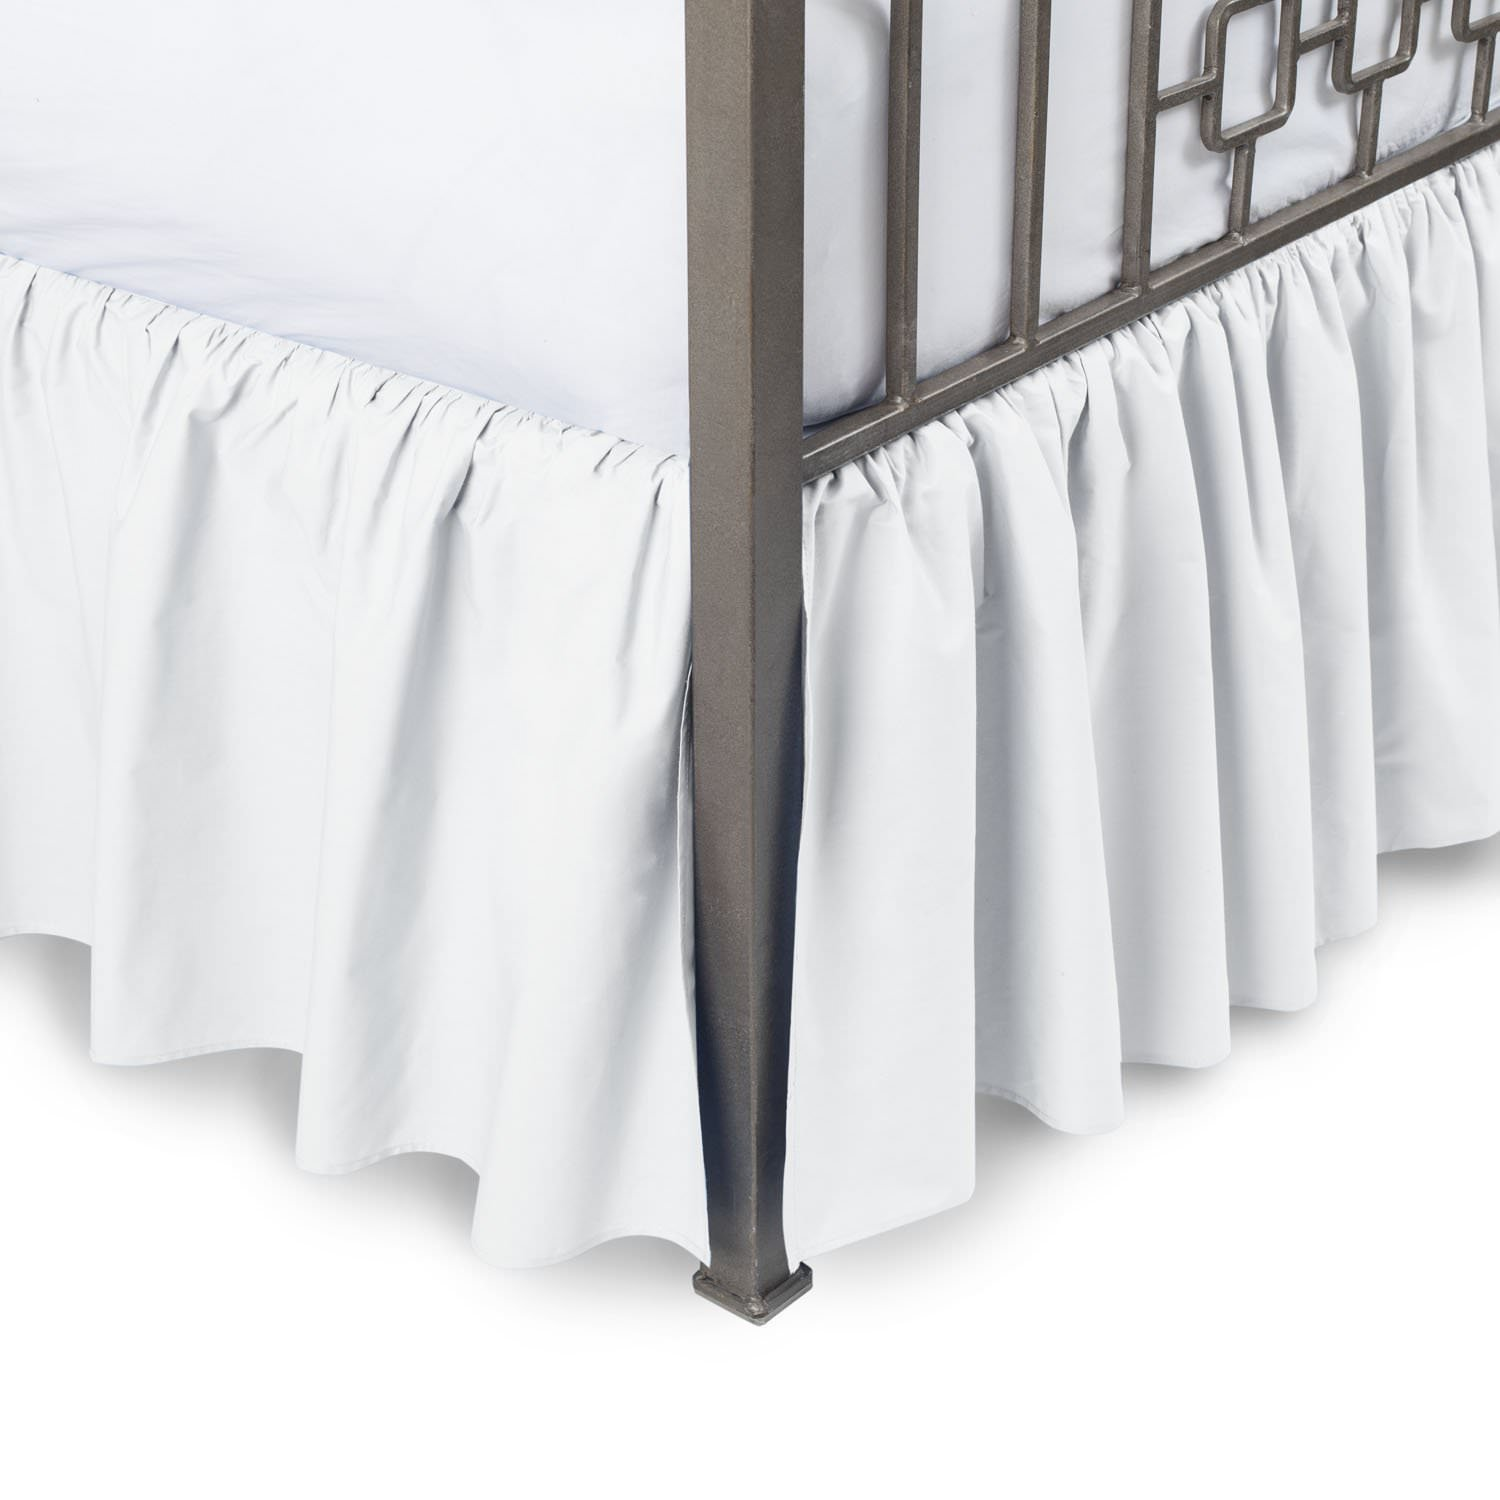 Queen Ruffle Ruffle Bed Skirt 18 inch Drop 600-Thread Count 100% Long Staple Cotton 1pc Split Corner Ruffle Ruffle Bed Skirt Queen Size 18 inch Drop White With Plates Perfect For All Bed Types